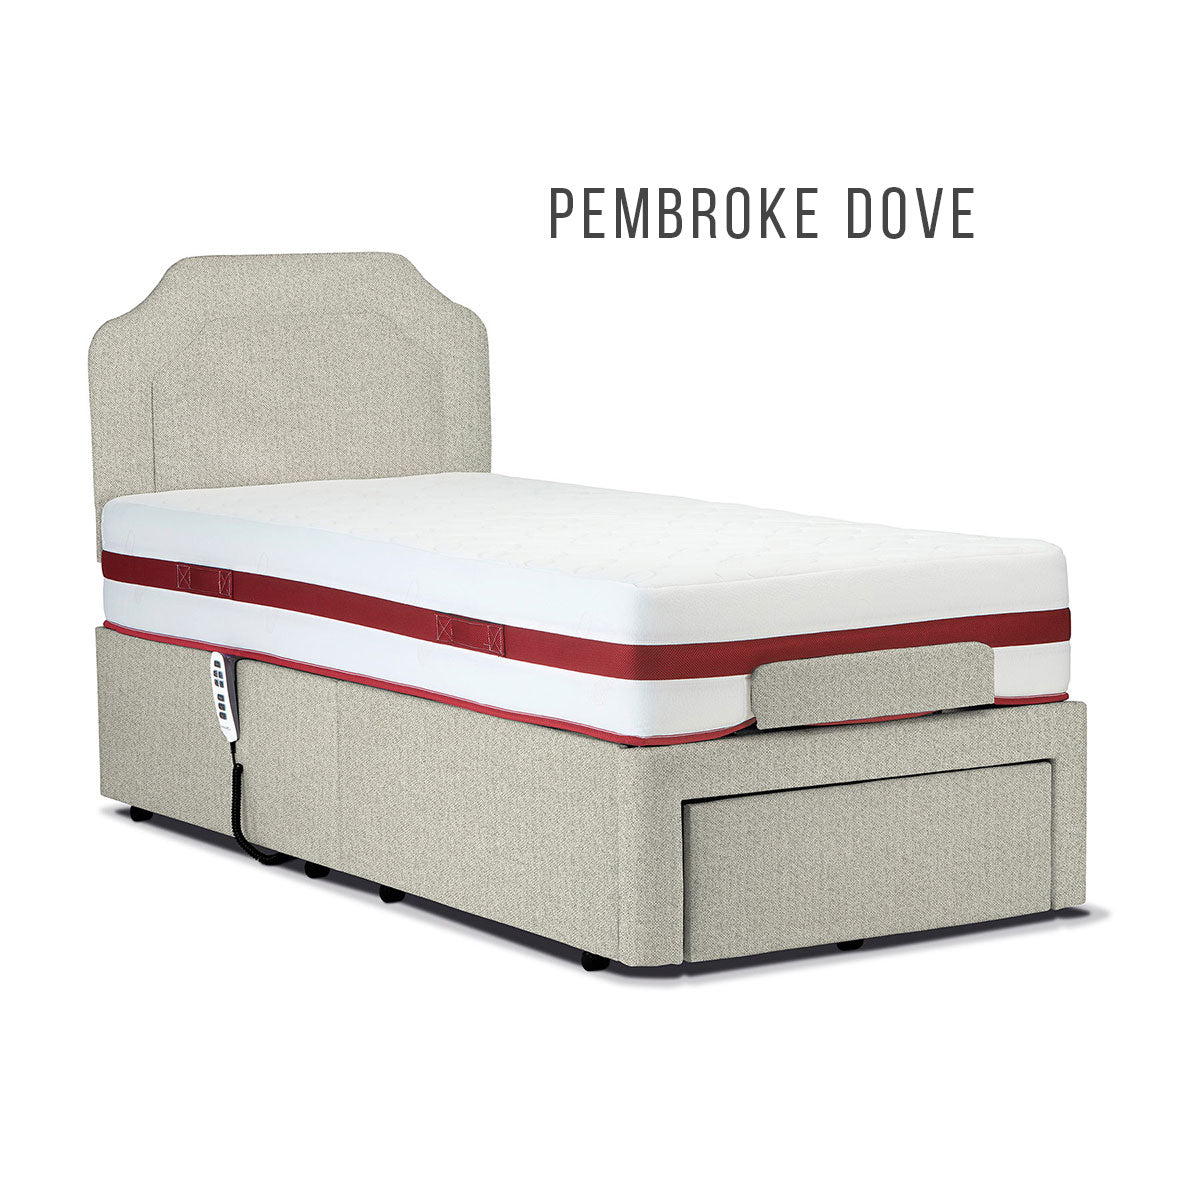 Sherborne 6' Dorchester Head and Foot Adjustable Bed